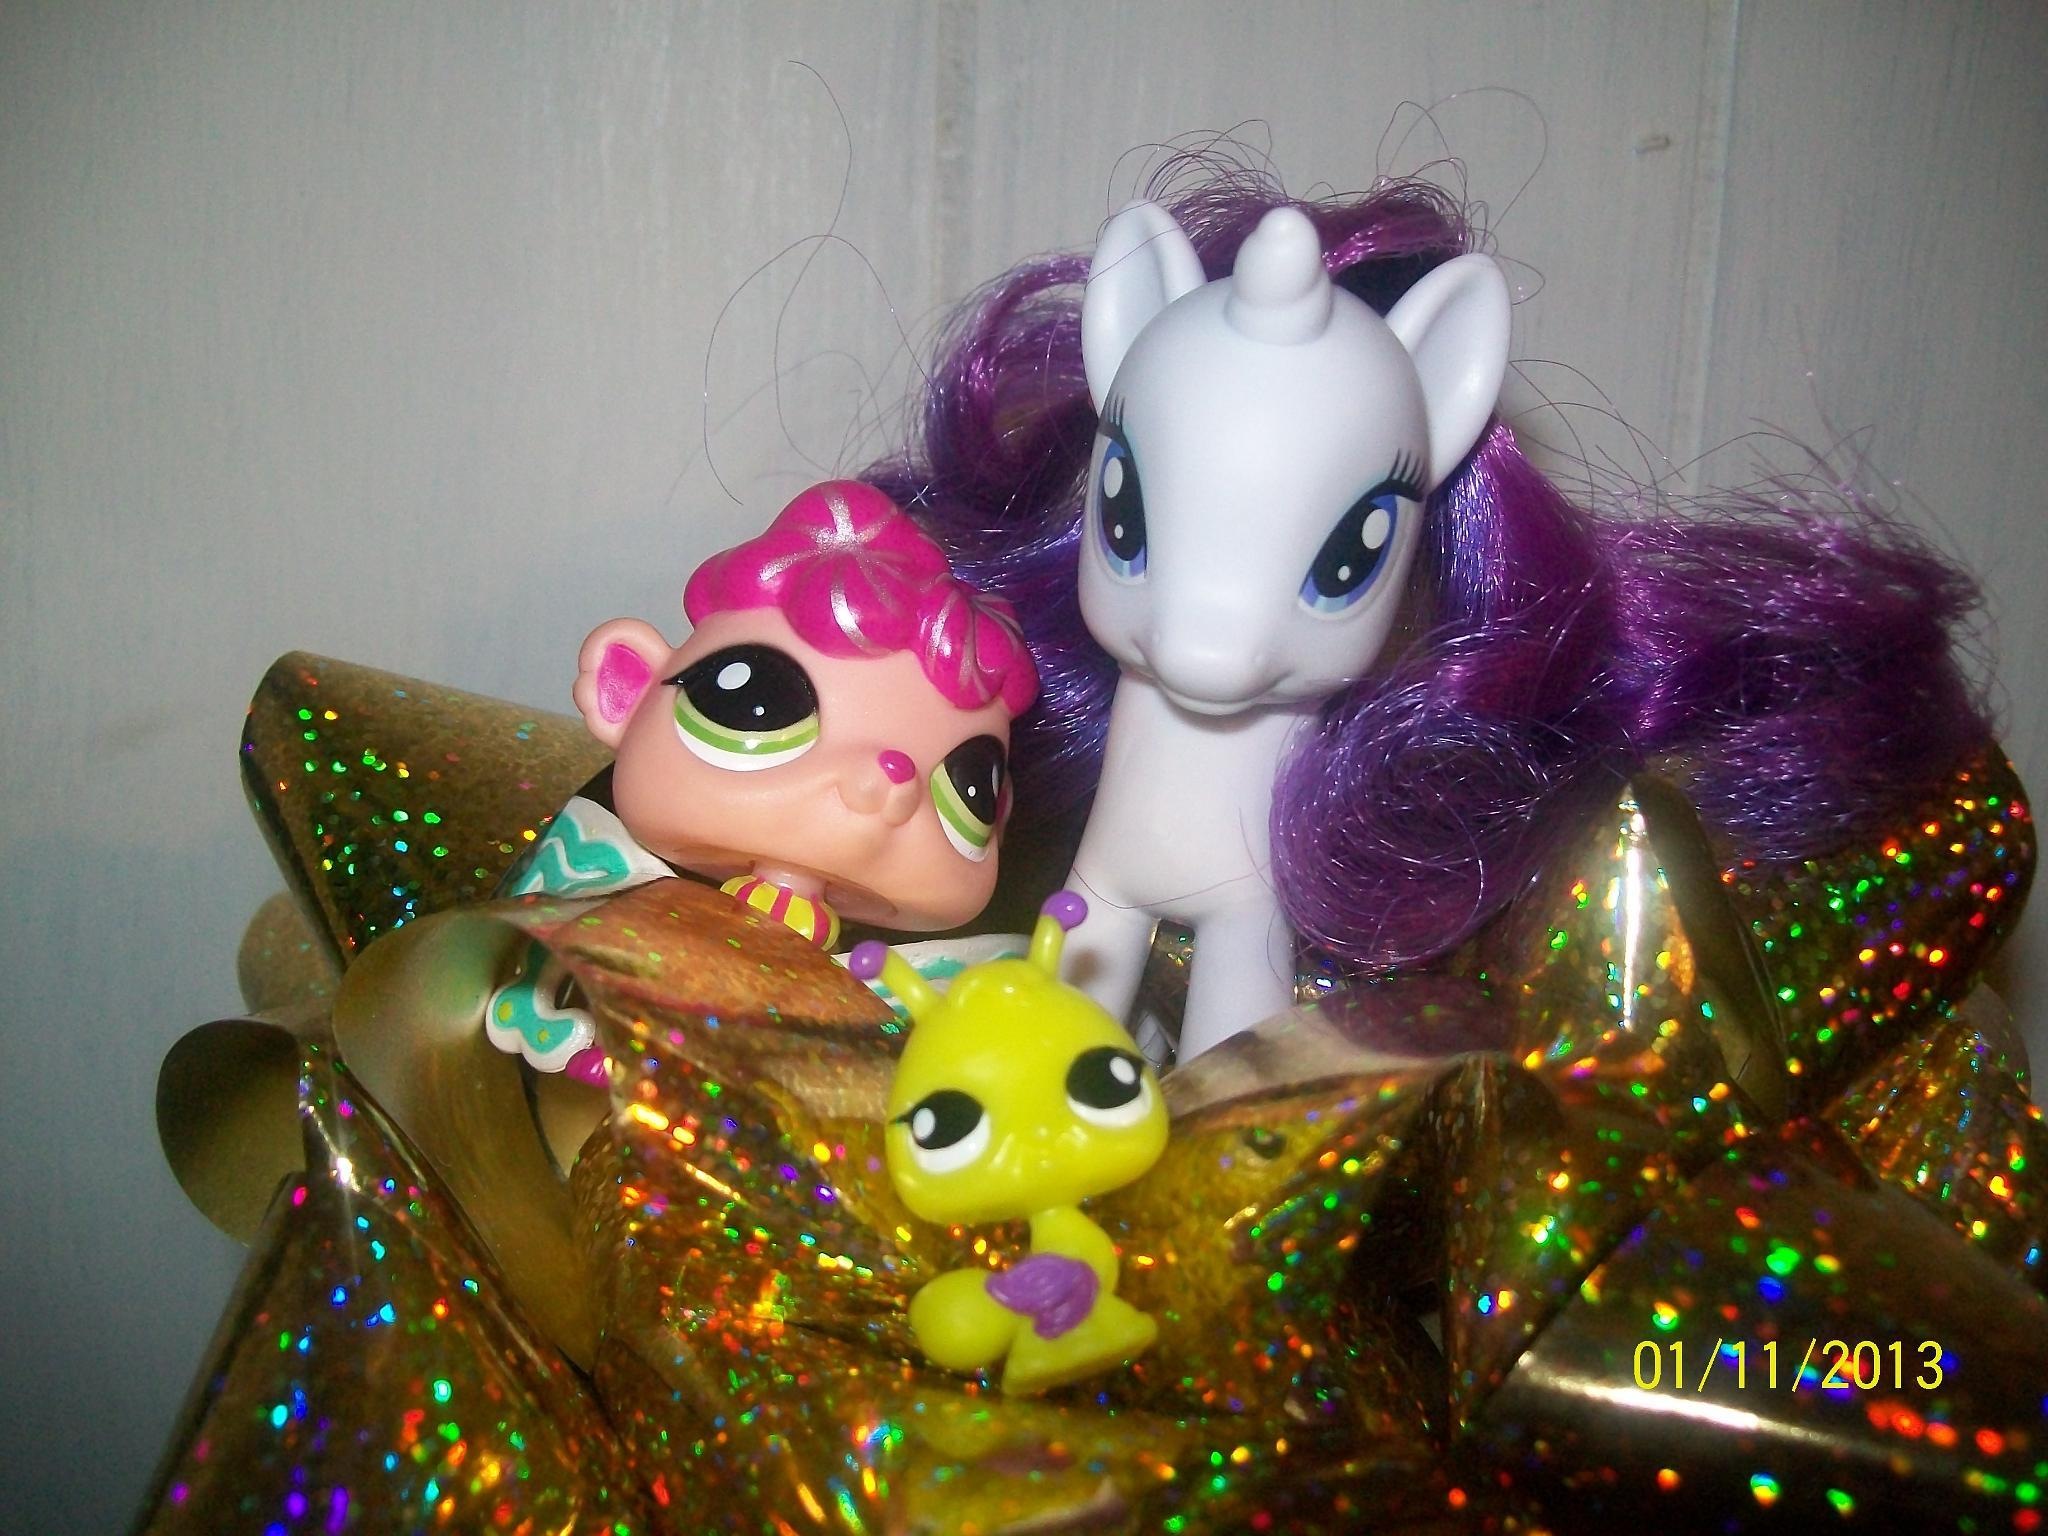 How much do u know about Littlest Pet Shop?